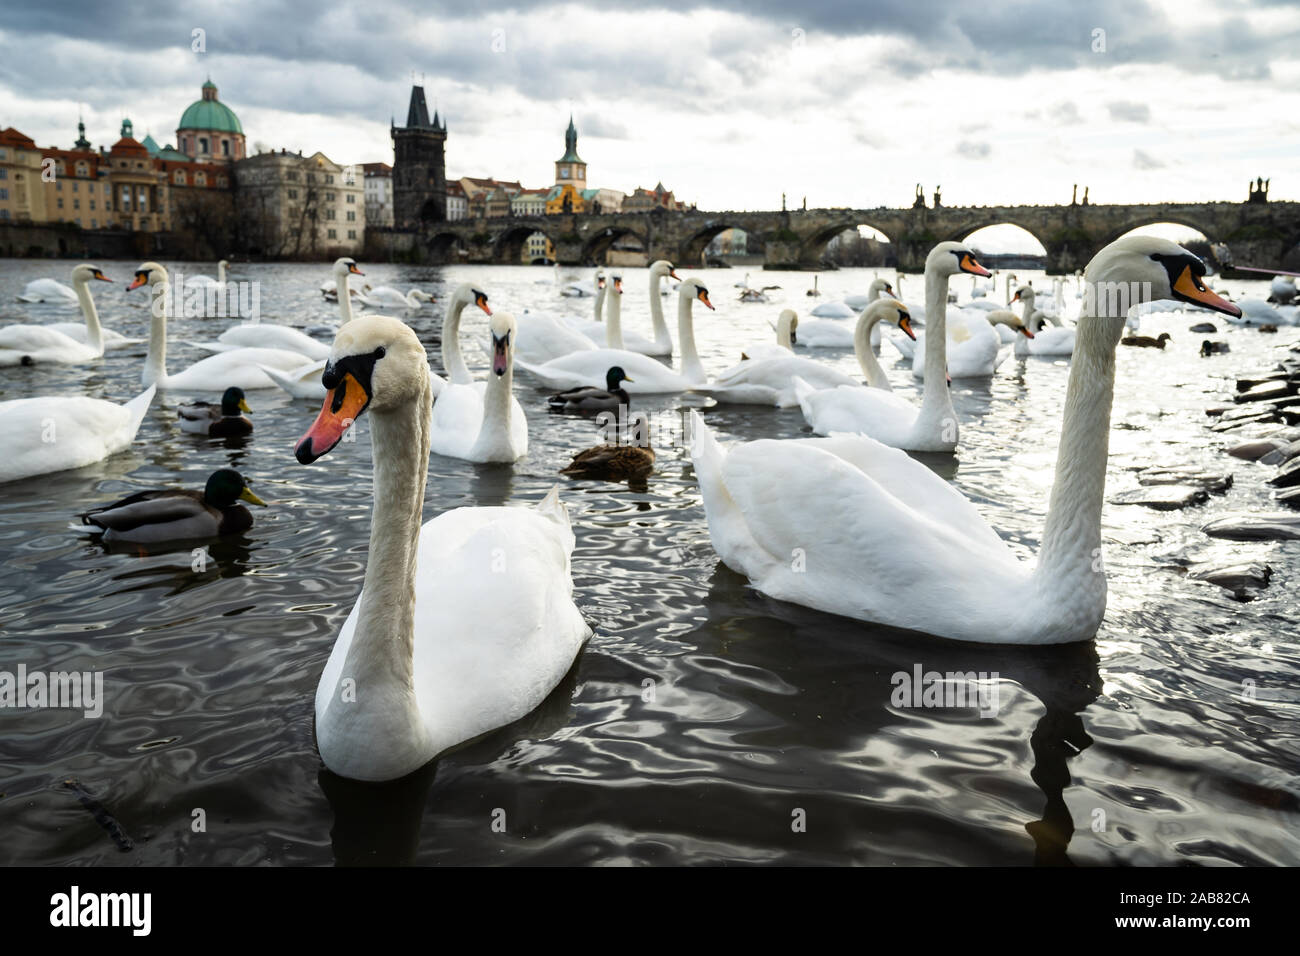 Swans gather on the banks of the Vltava river with Charles Bridge in the background, Prague, Czech Republic, Europe Stock Photo